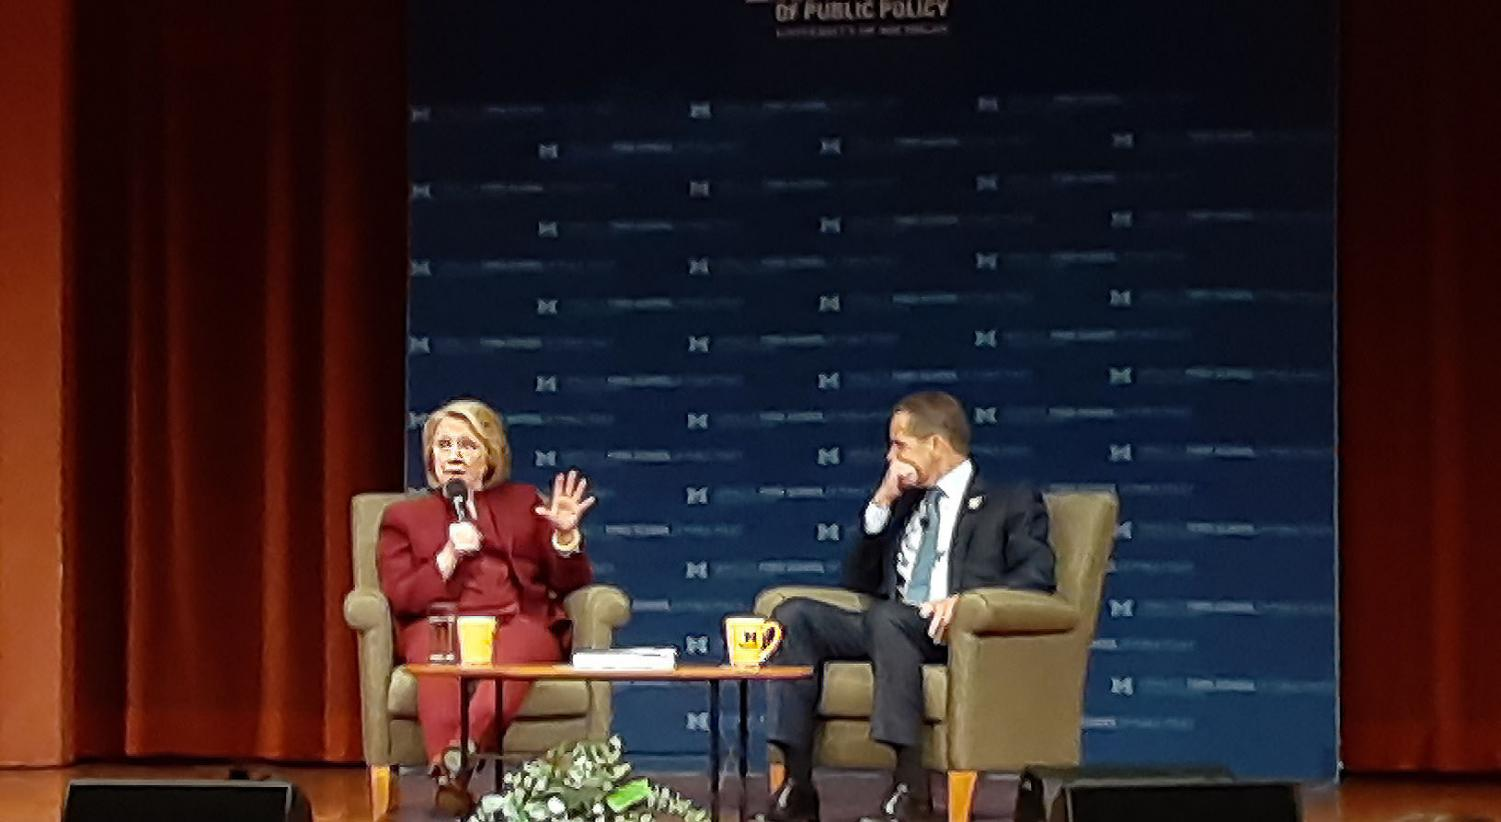 Hillary Clinton talking to Dean Barr. Clinton touched on topics including immigration, women's rights and impeachment during her interview.